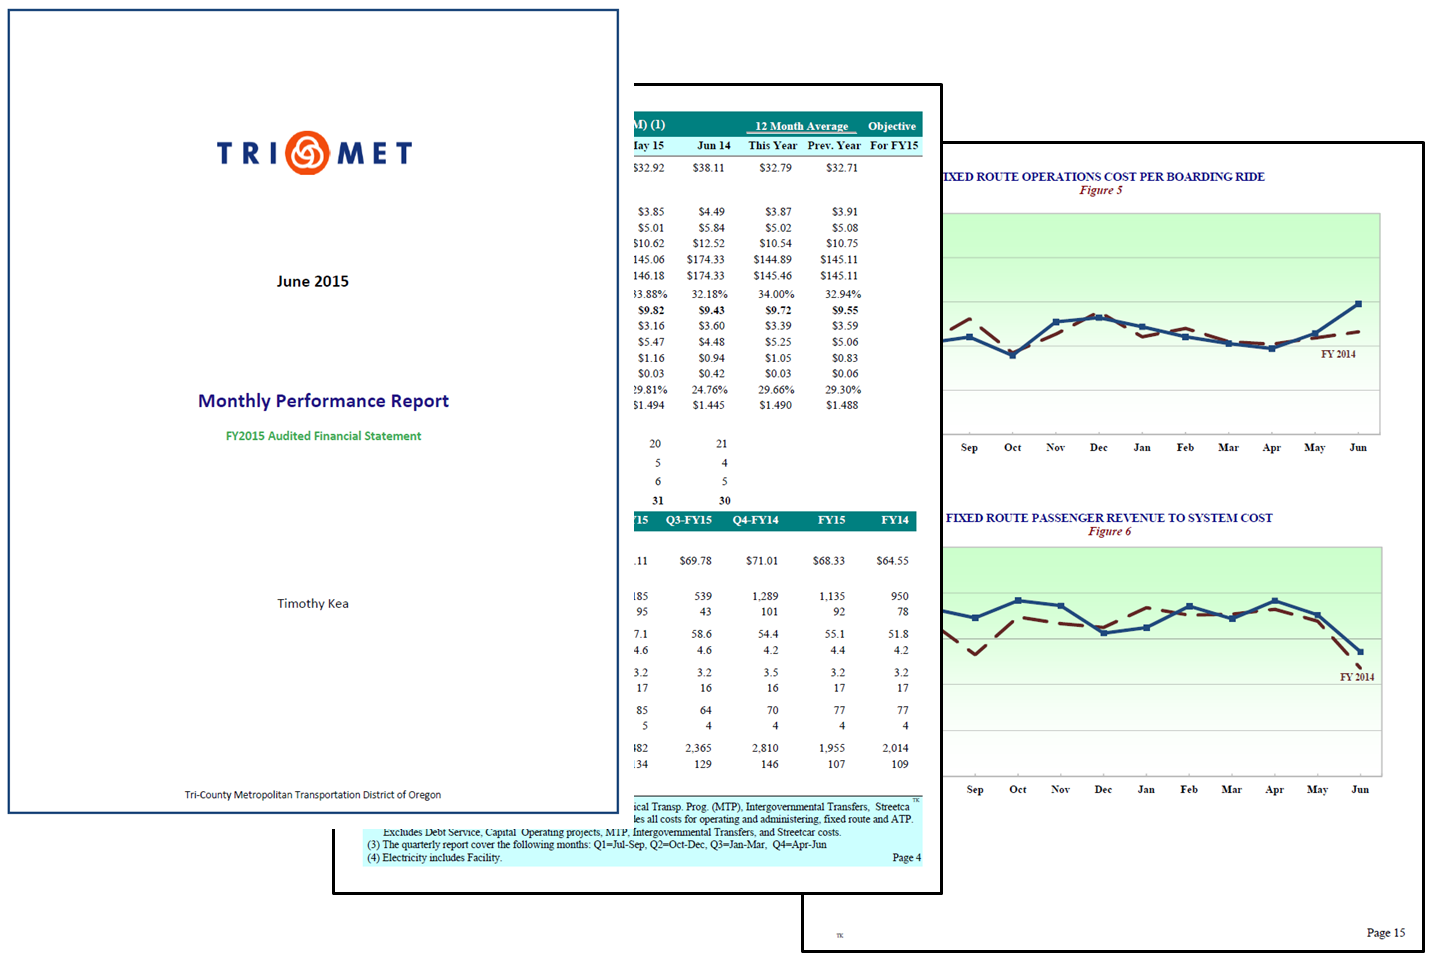 Excerpt pages from TriMet monthly performance report, including the cover page, tables of data, and graphs of data.